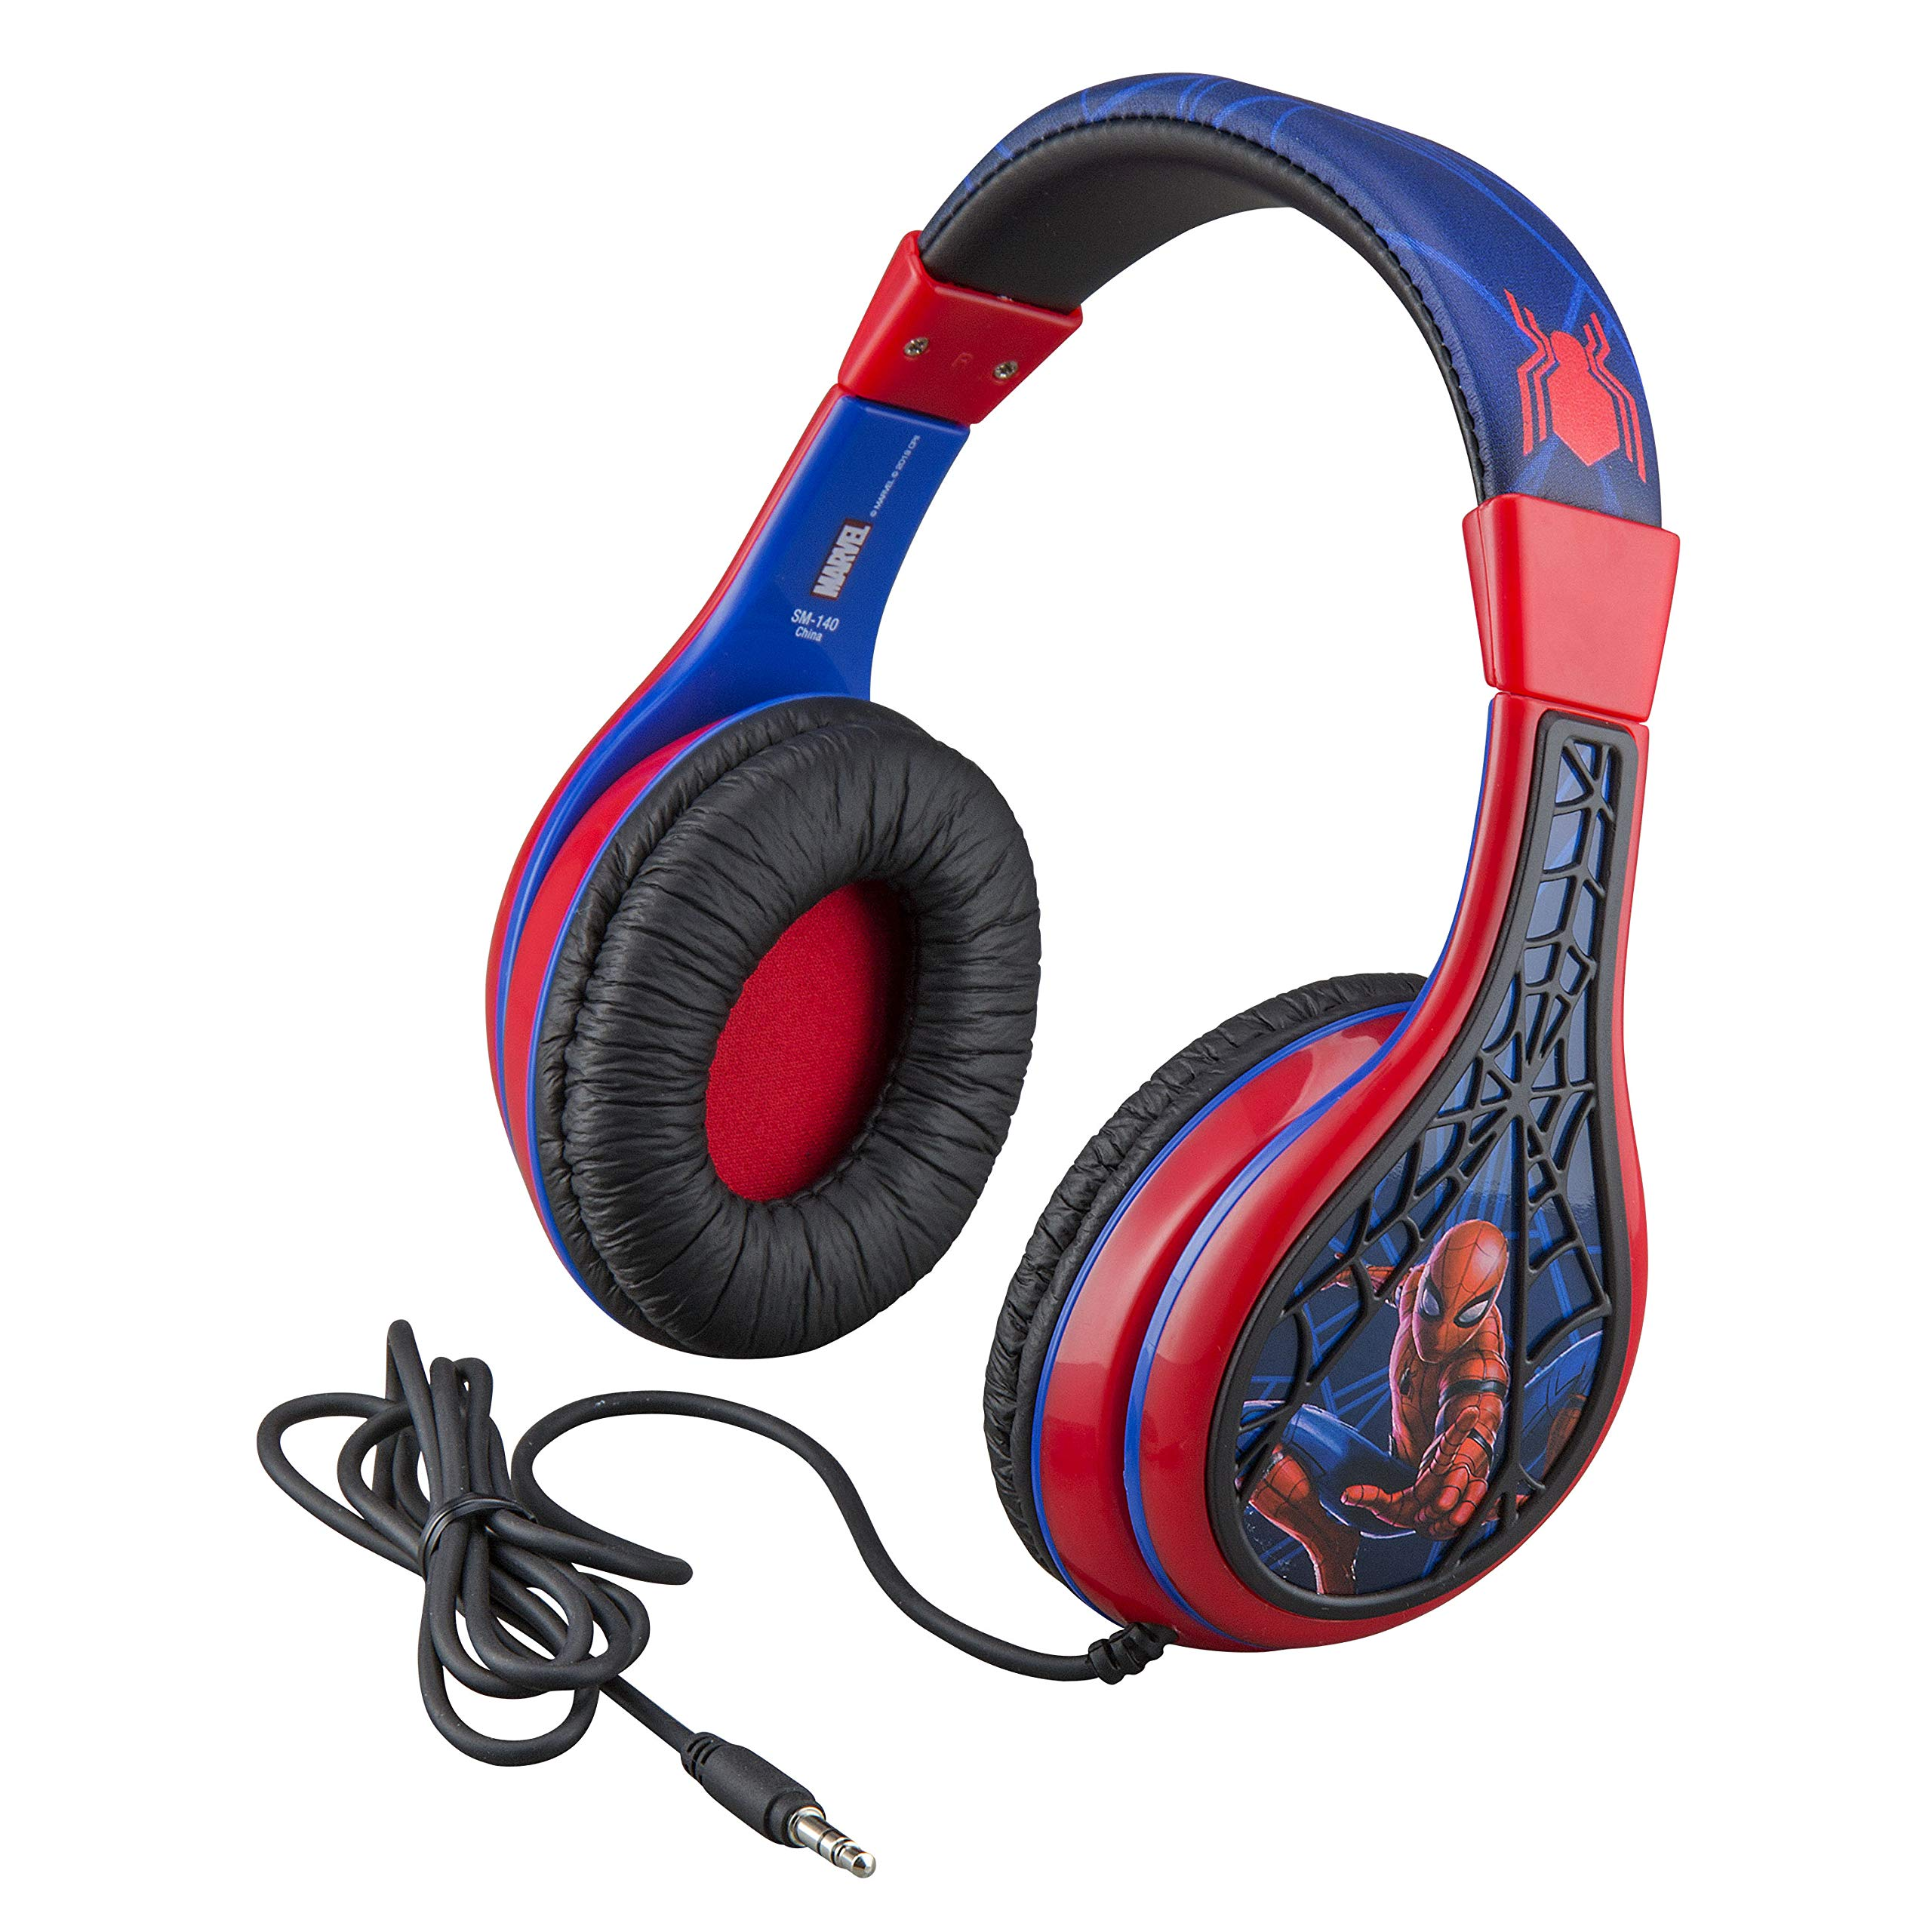 Spider Man Kids Headphones, Adjustable Headband, Stereo Sound, 3.5Mm Jack, Wired Headphones for Kids, Tangle-Free, Volume Control, Foldable, Childrens Headphones Over Ear for School Home, Travel by eKids